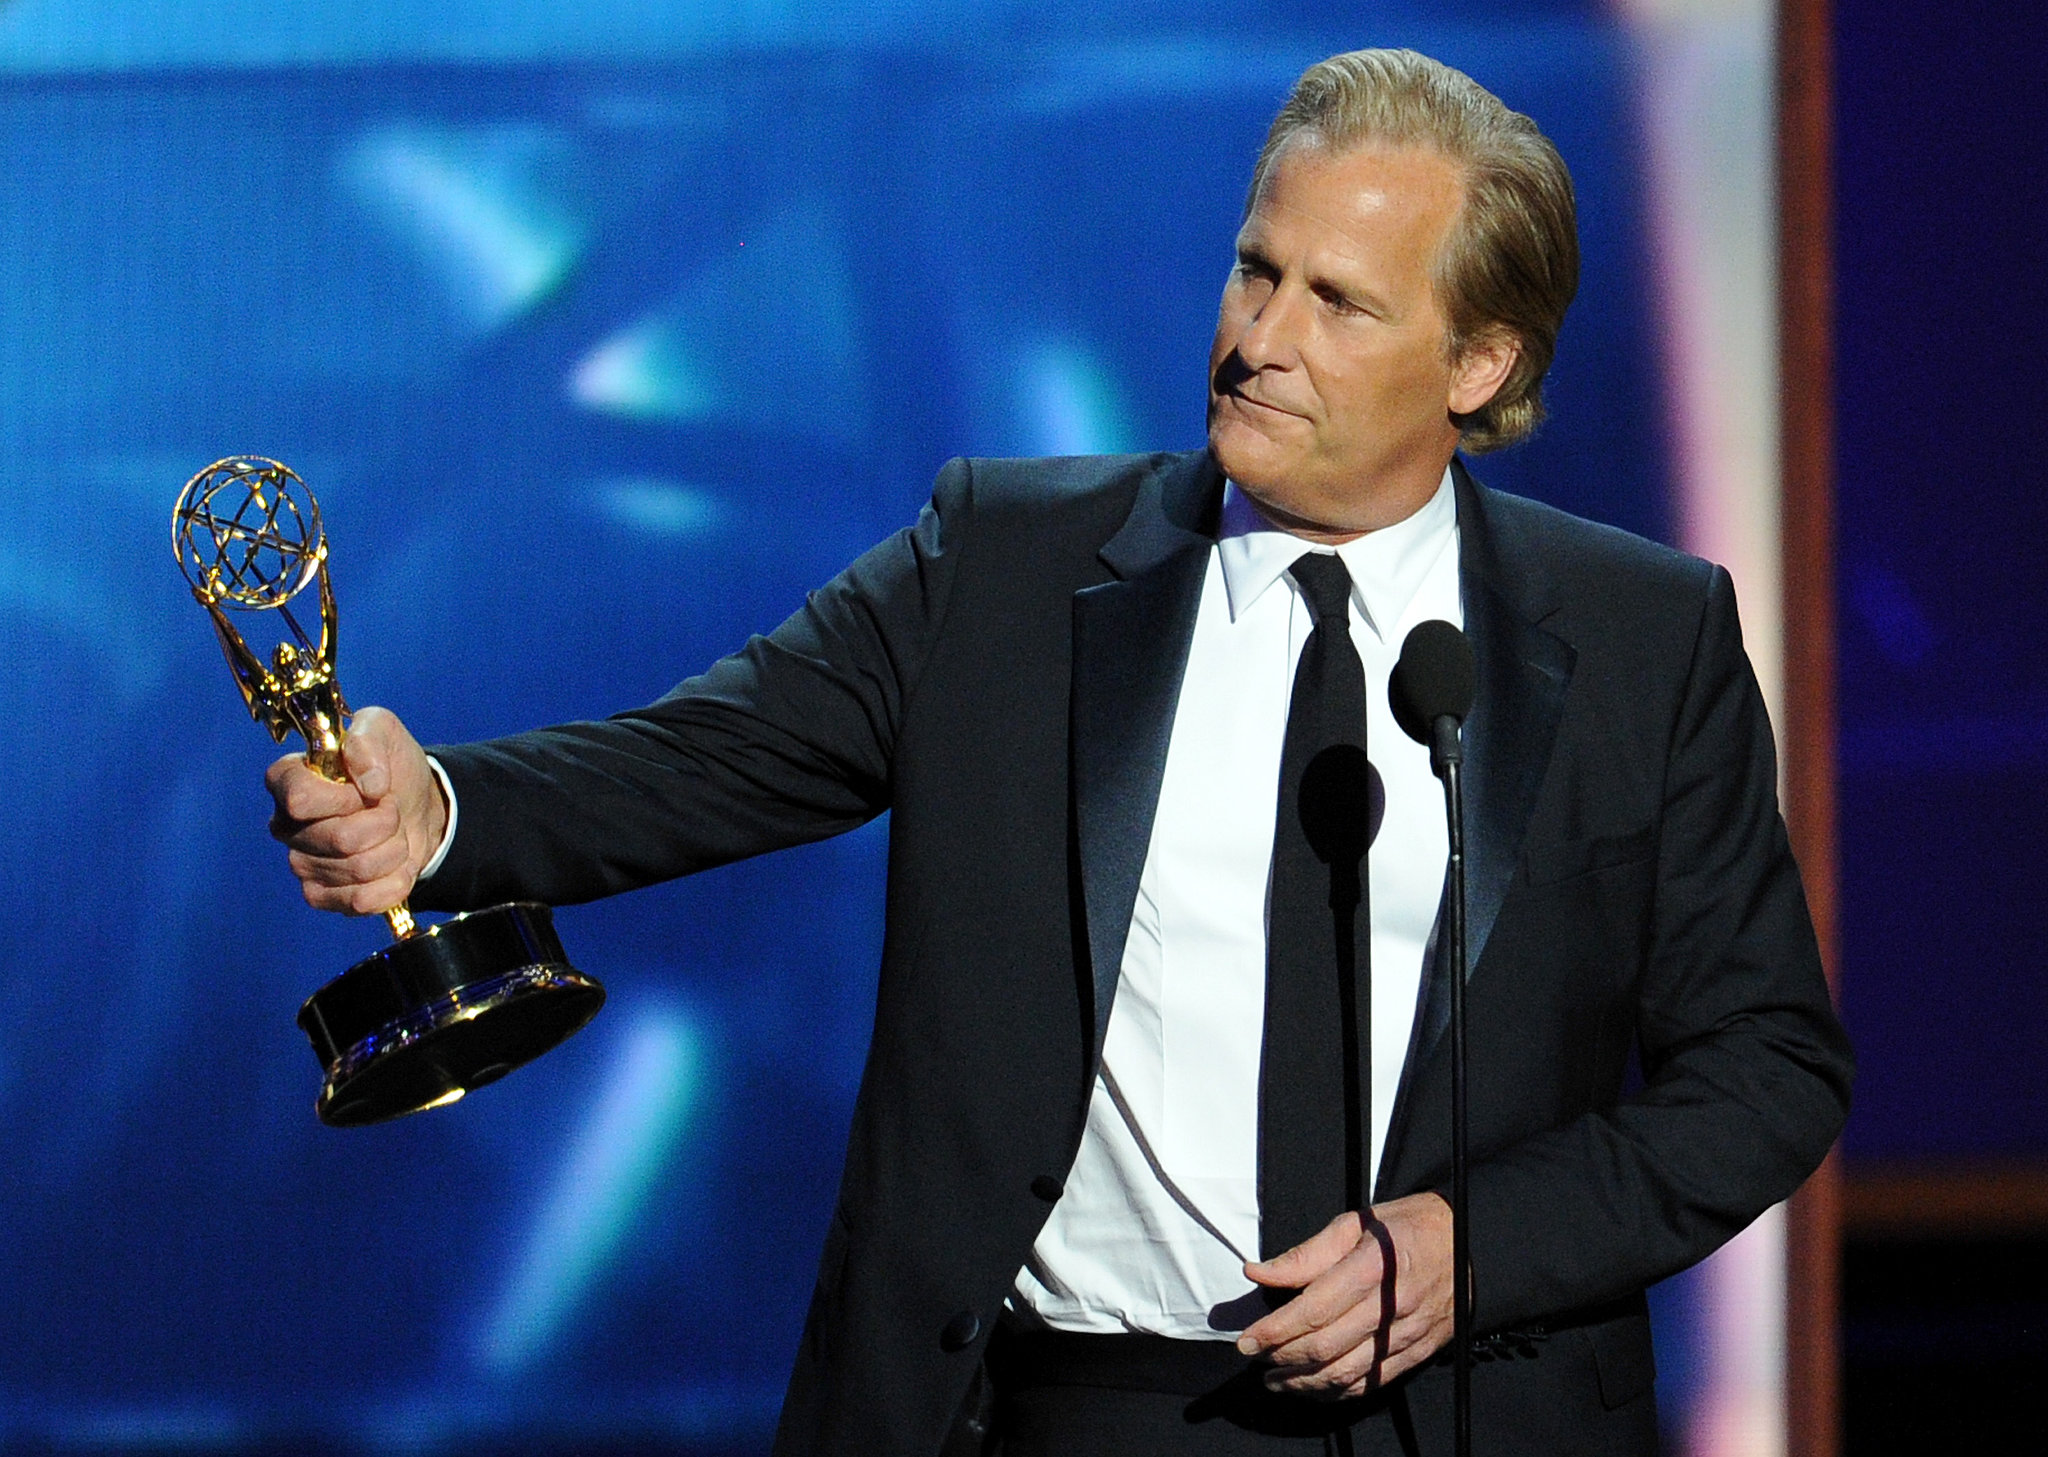 Jeff Daniels accepted the award for best leading actor in a drama.